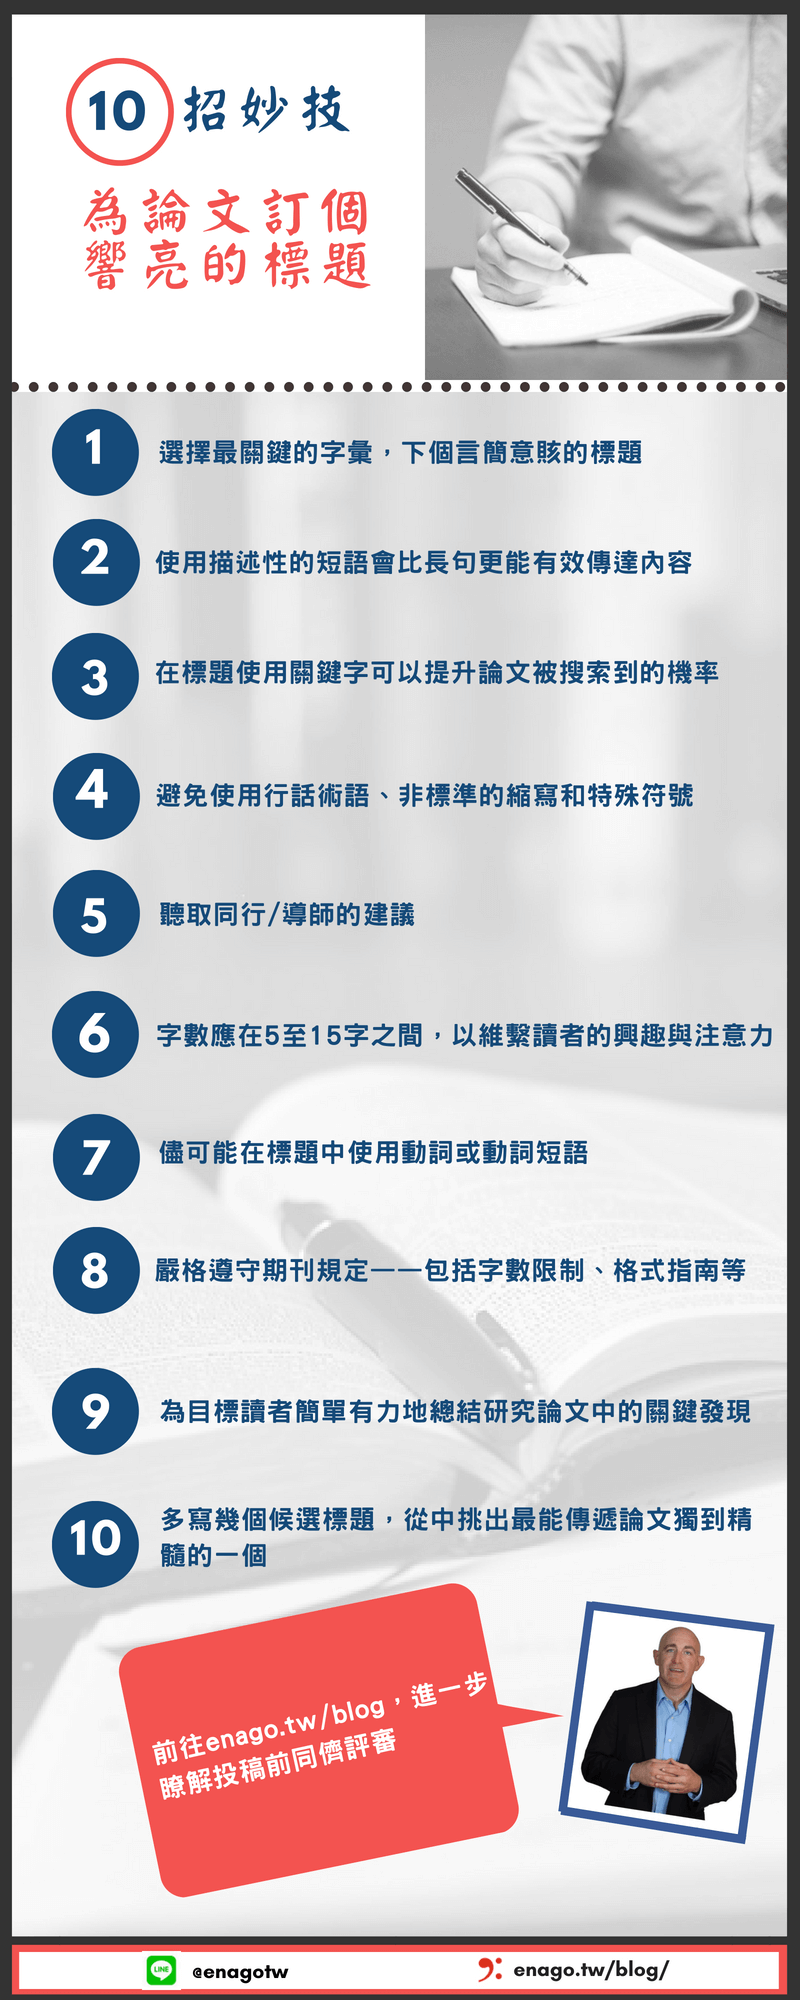 Top 10 Tips on Choosing an Attractive Research Title_Taiwan_Translated